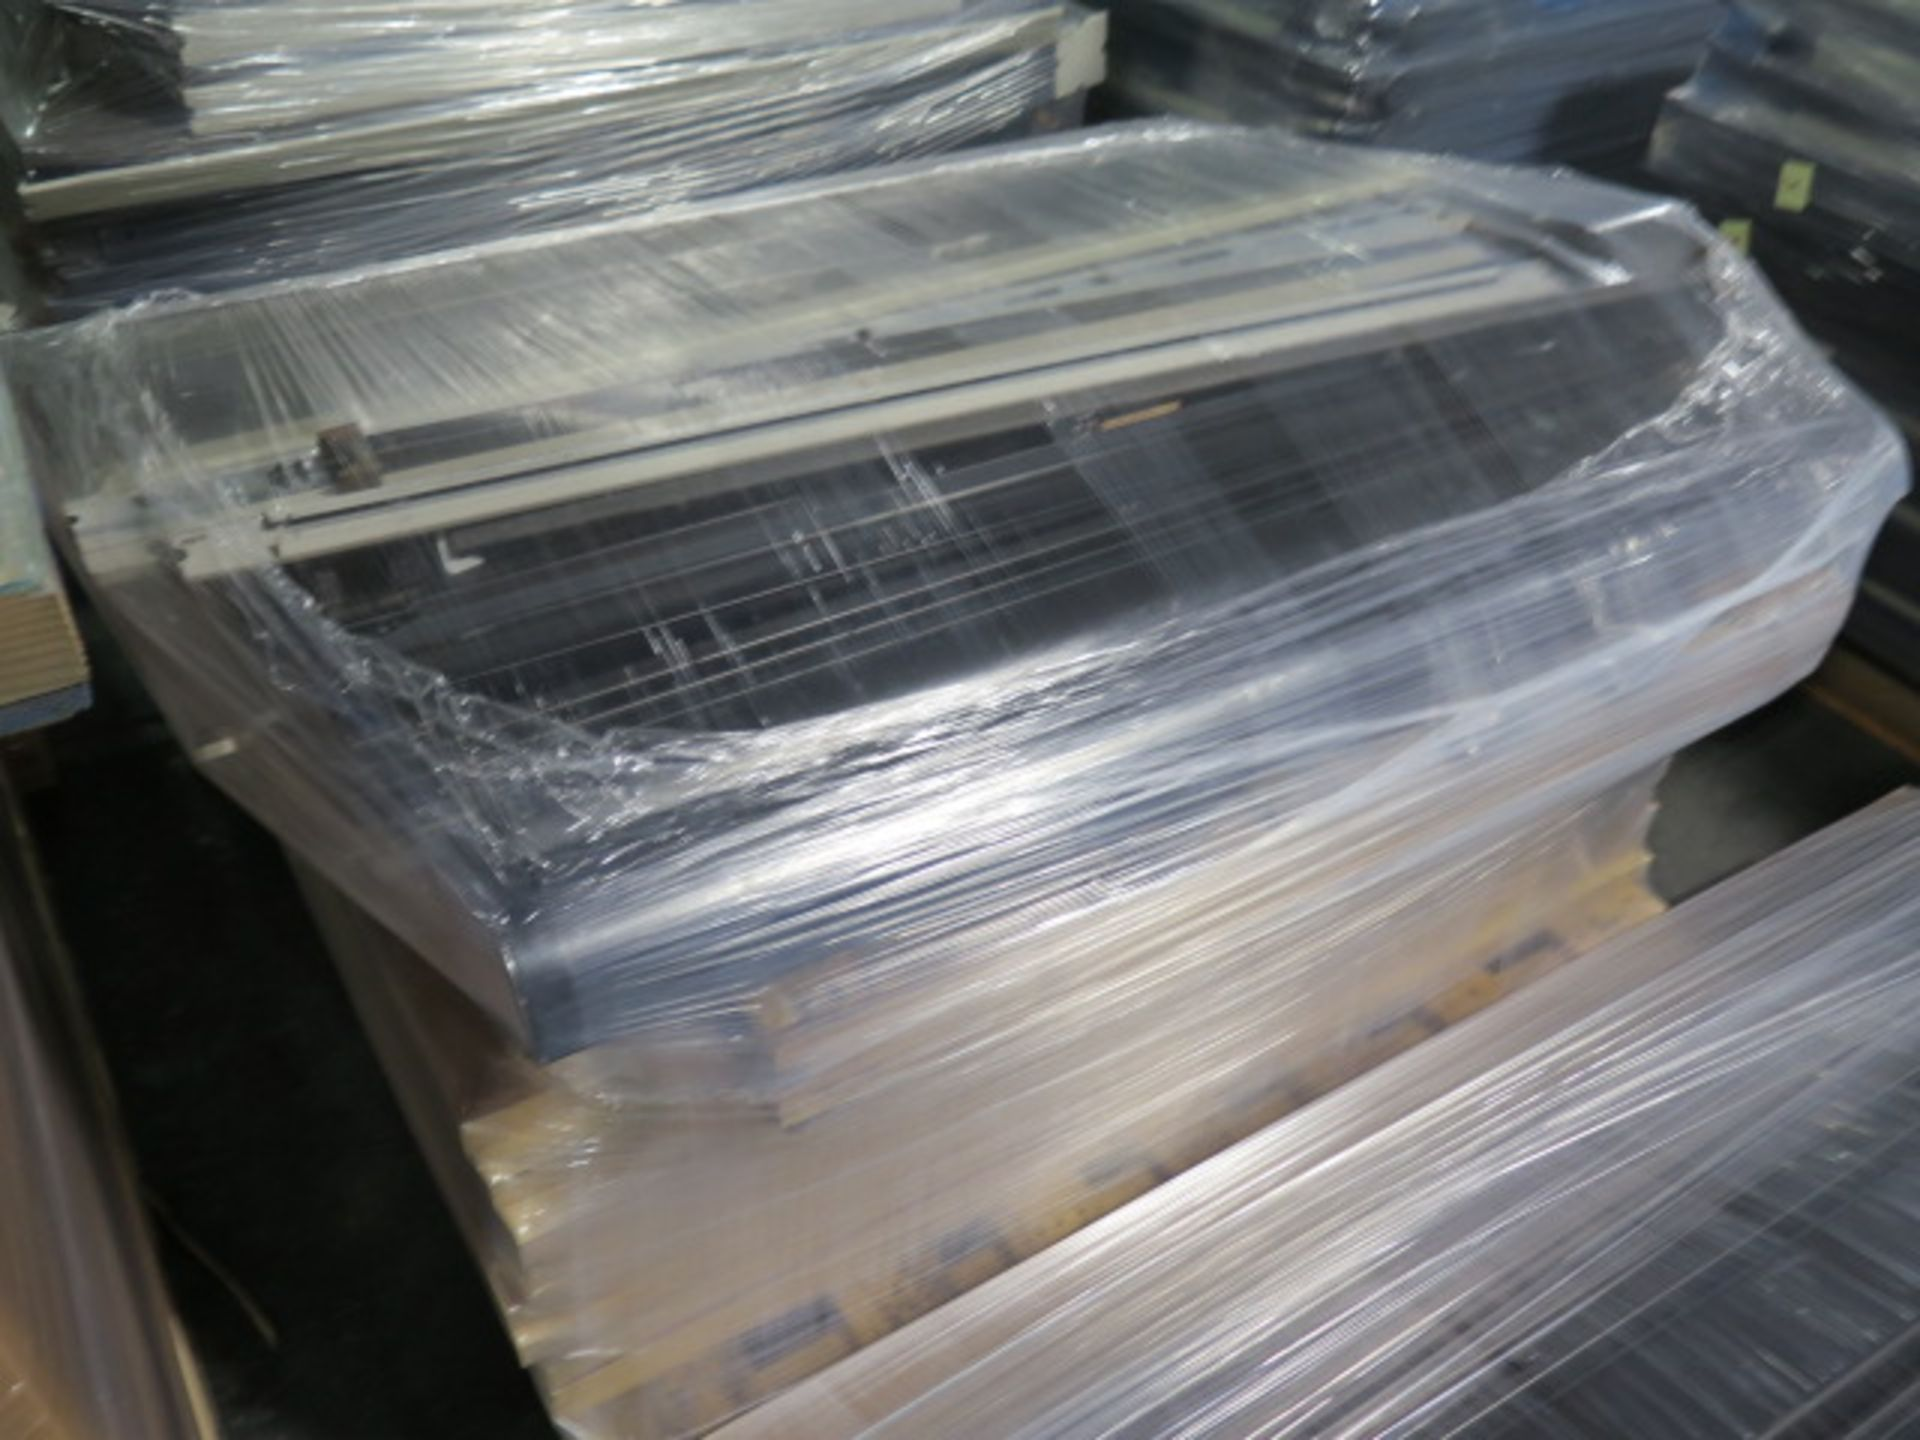 Large Quantity of Office Partitions, Desks, File Cabinets and Storage Cabinets (SOLD AS-IS - NO WARA - Image 19 of 24